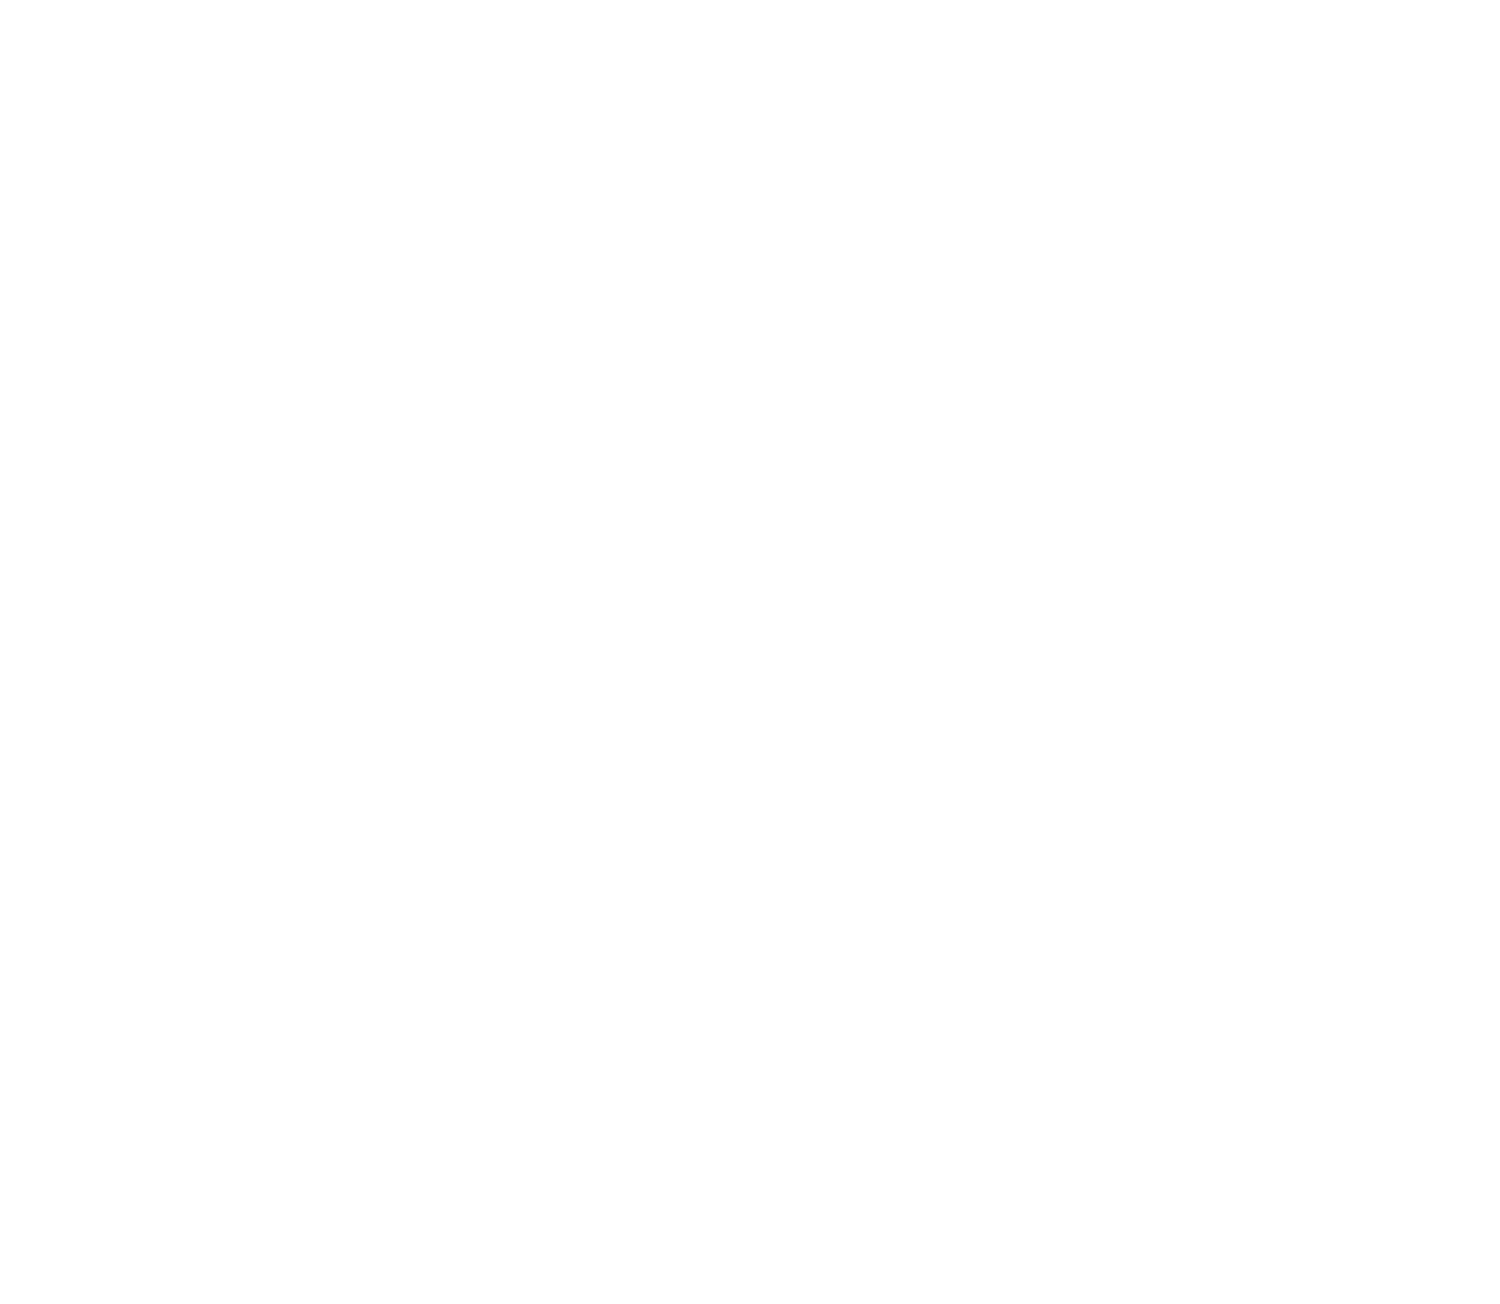 Great American Coffee Tour